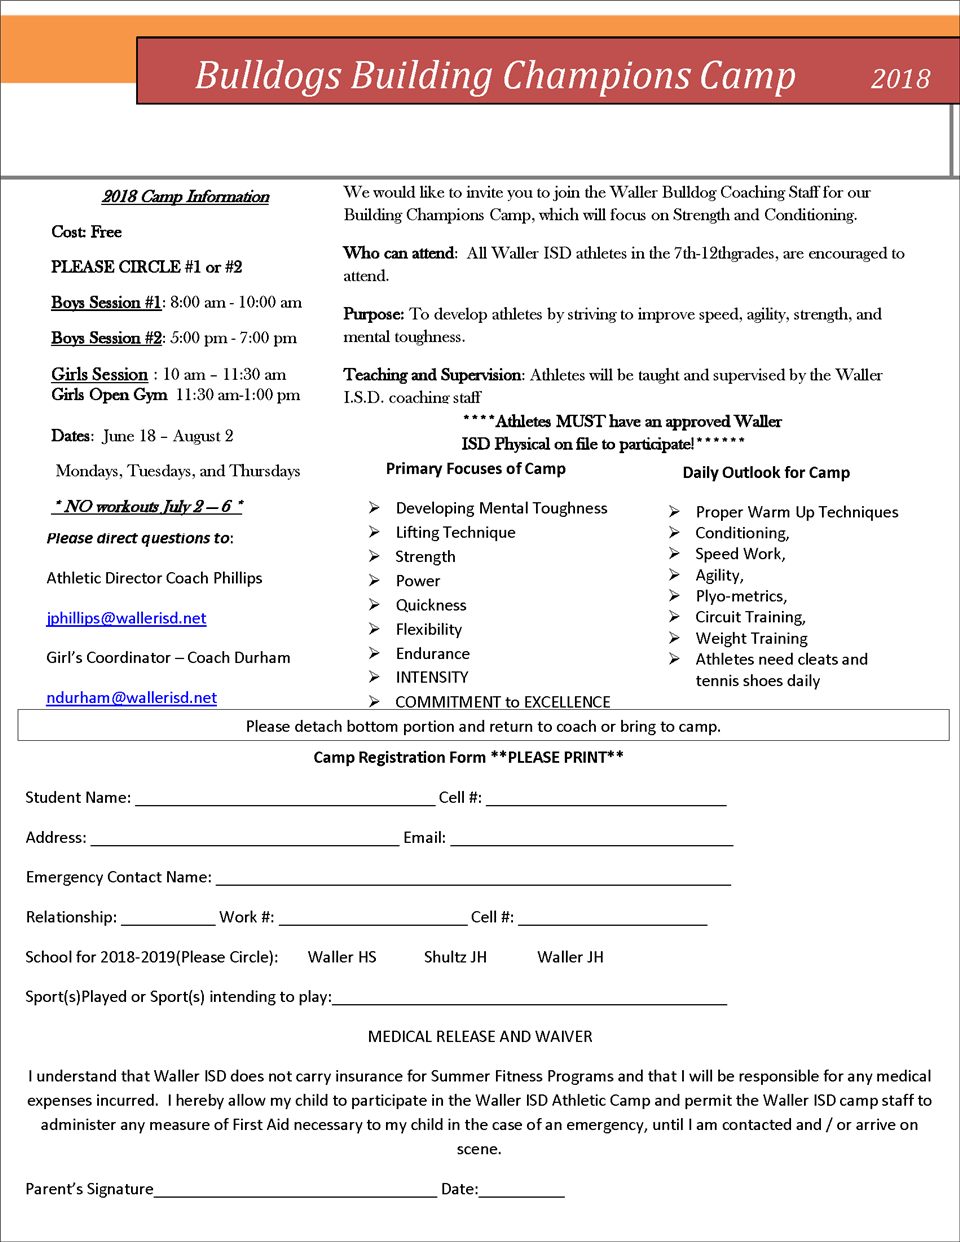 Waller ISD Bulldog Camp flyer